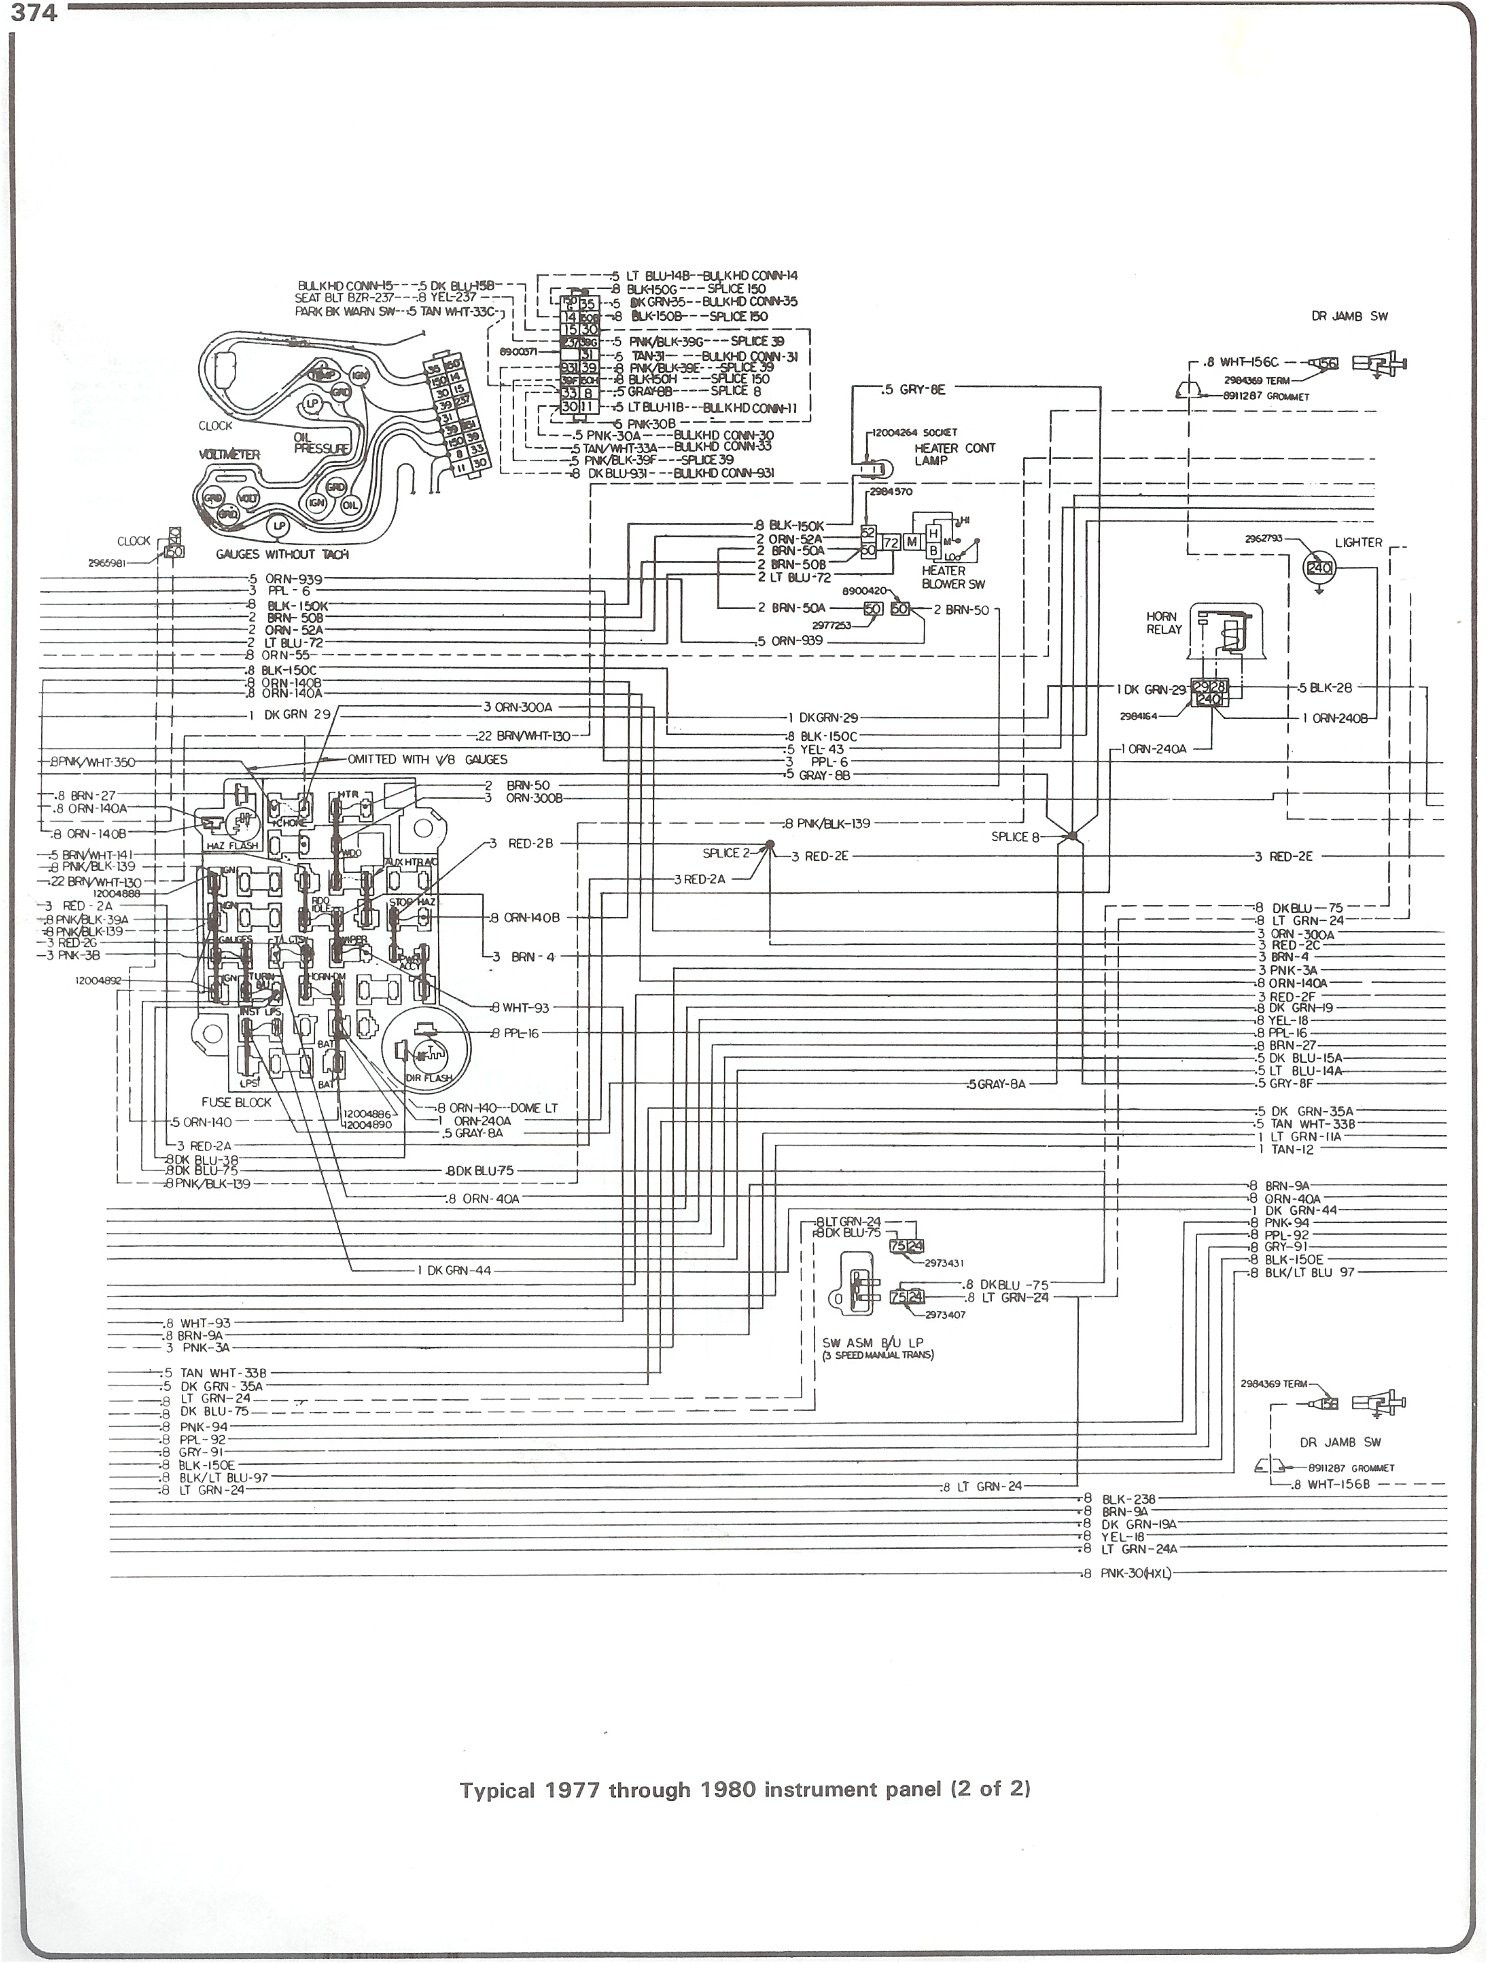 hight resolution of 78 chevy van fuse box electrical work wiring diagram u2022 rh wiringdiagramshop today 70 chevy van